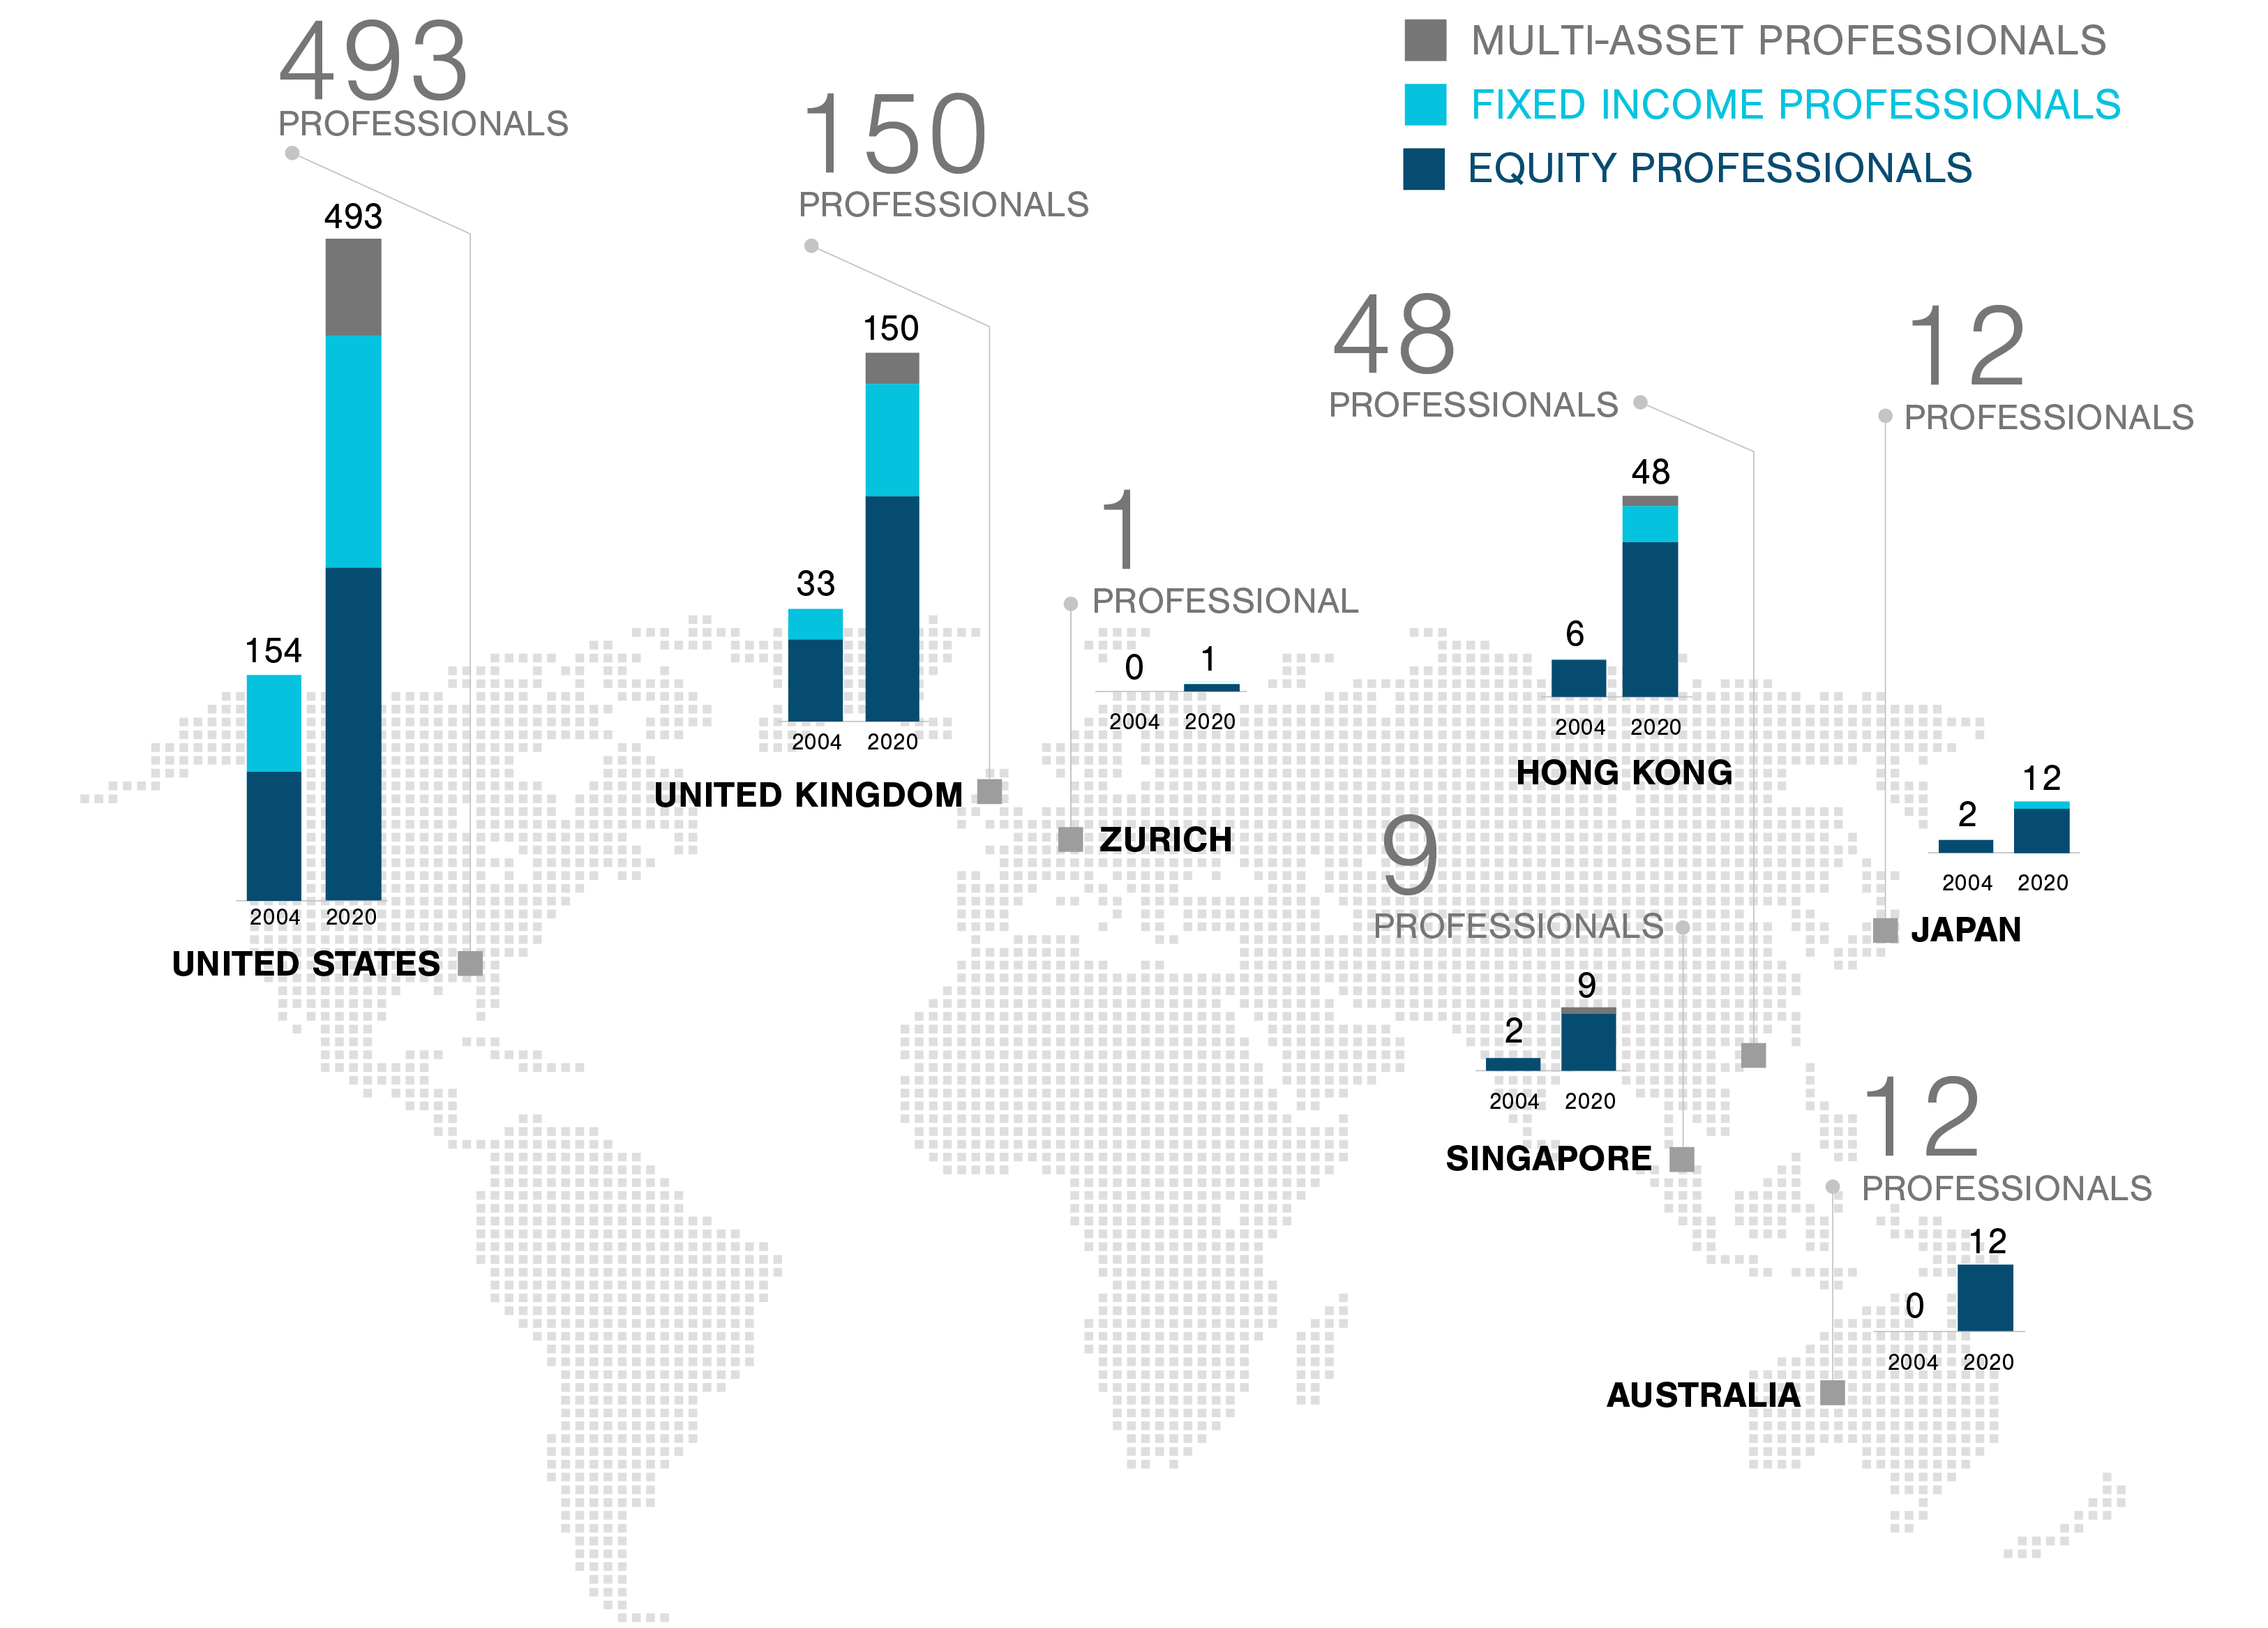 Infographic showing the 2019 number of T. Rowe Price multi-asset, fixed income and equity professionals, including growth since 2004, in each region. Also shows the Asset Under Management amounts of key asset classes